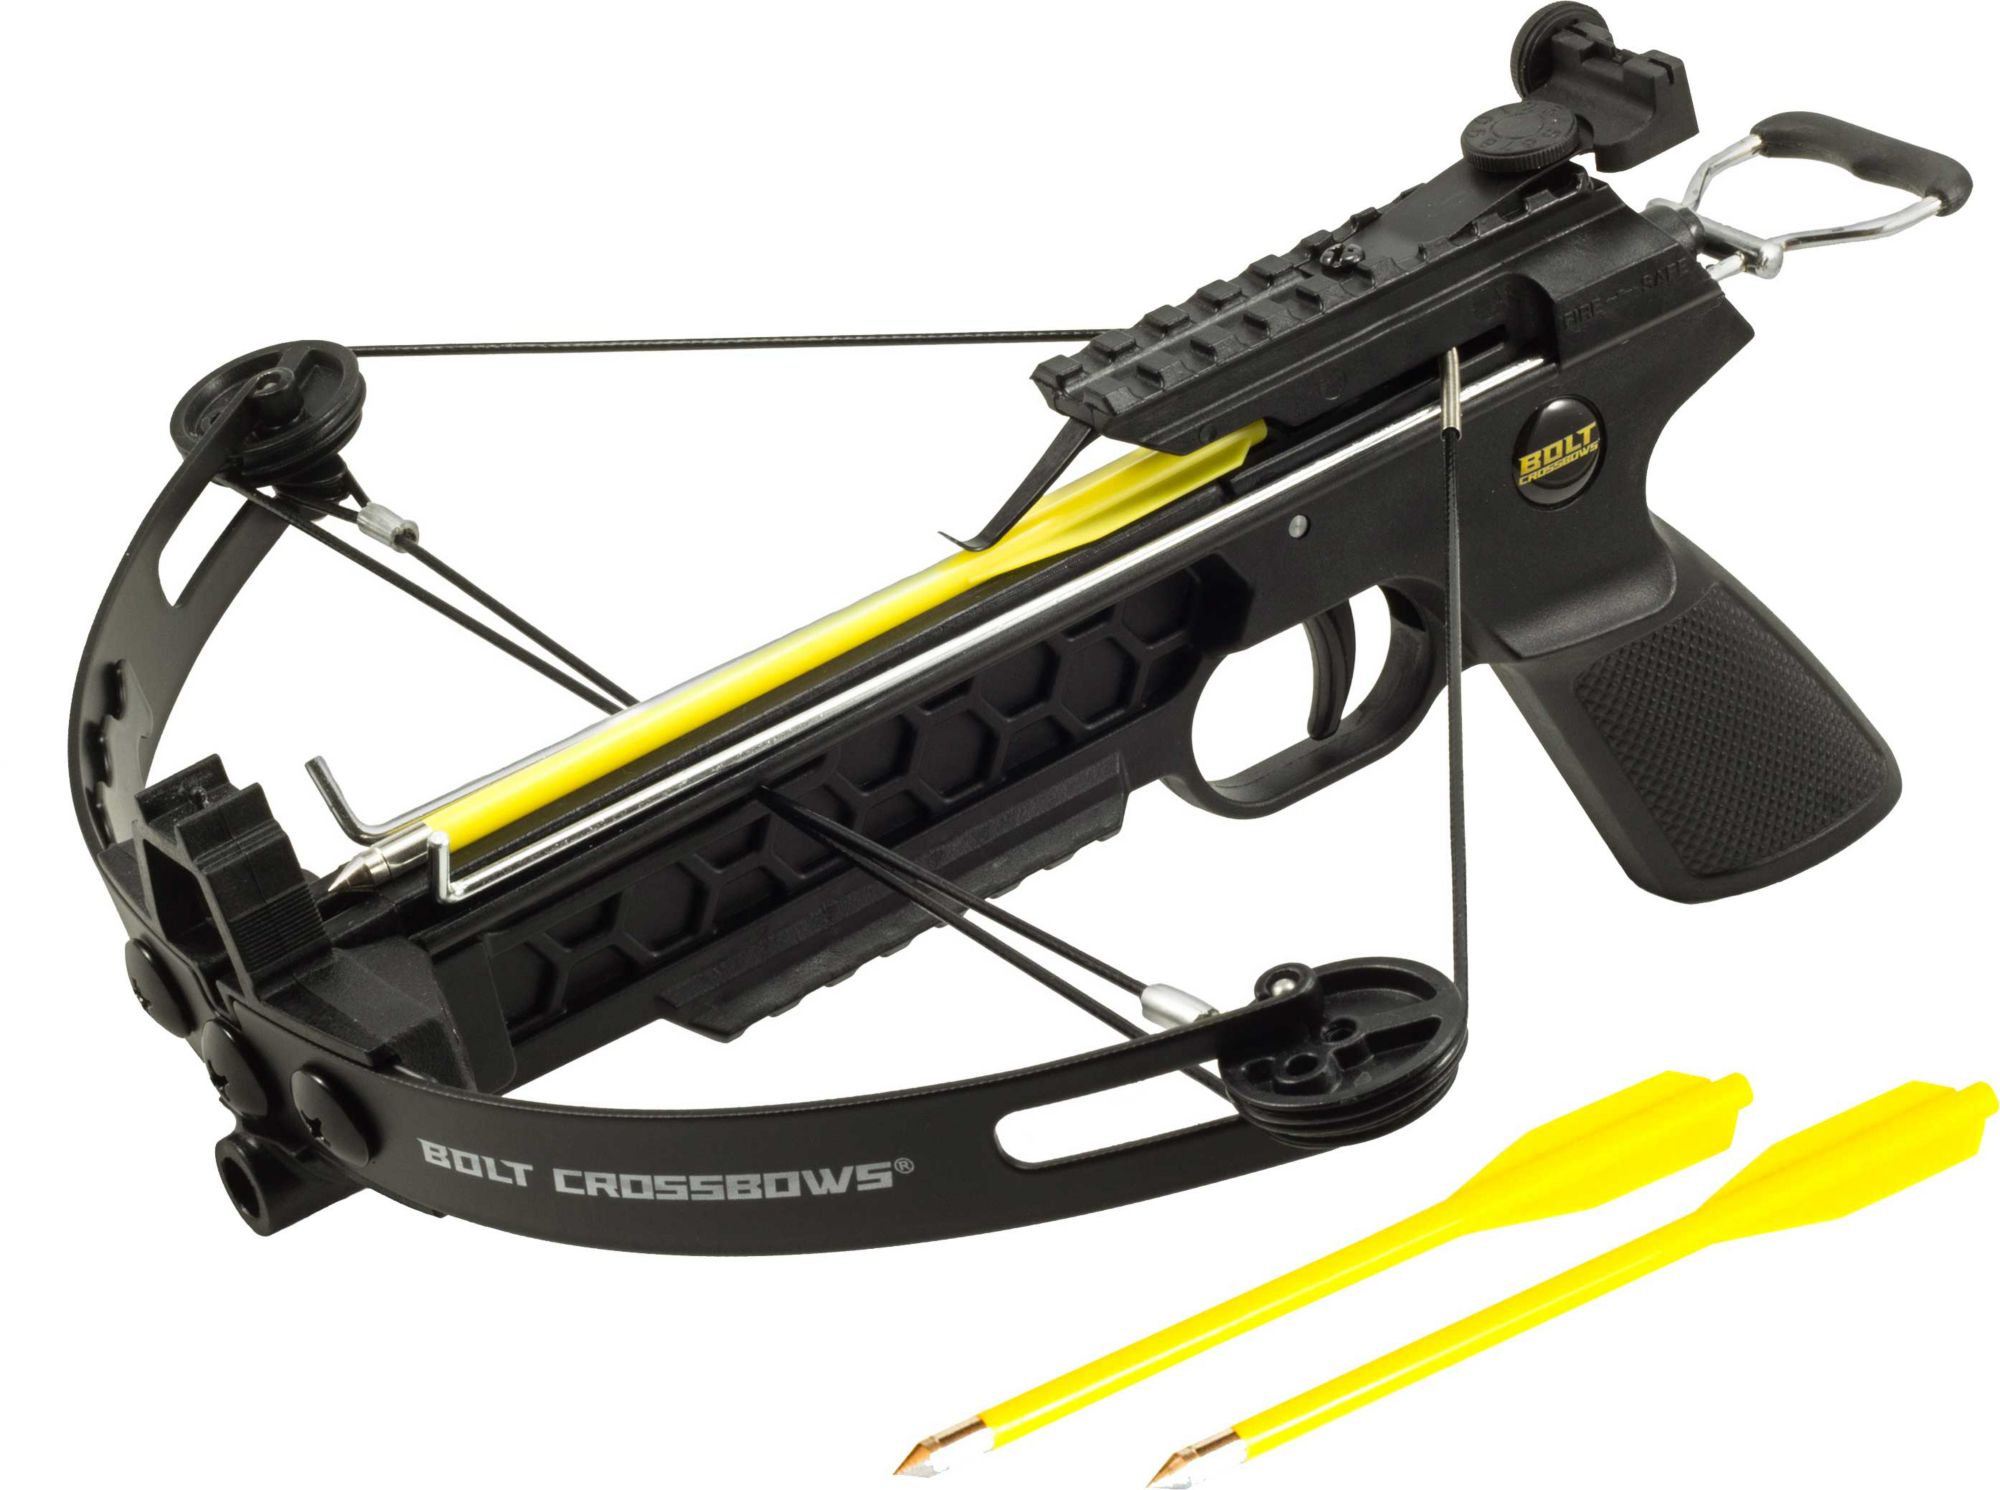 Bolt Crossbows Pitbull Pistol Crossbow Package thumbnail